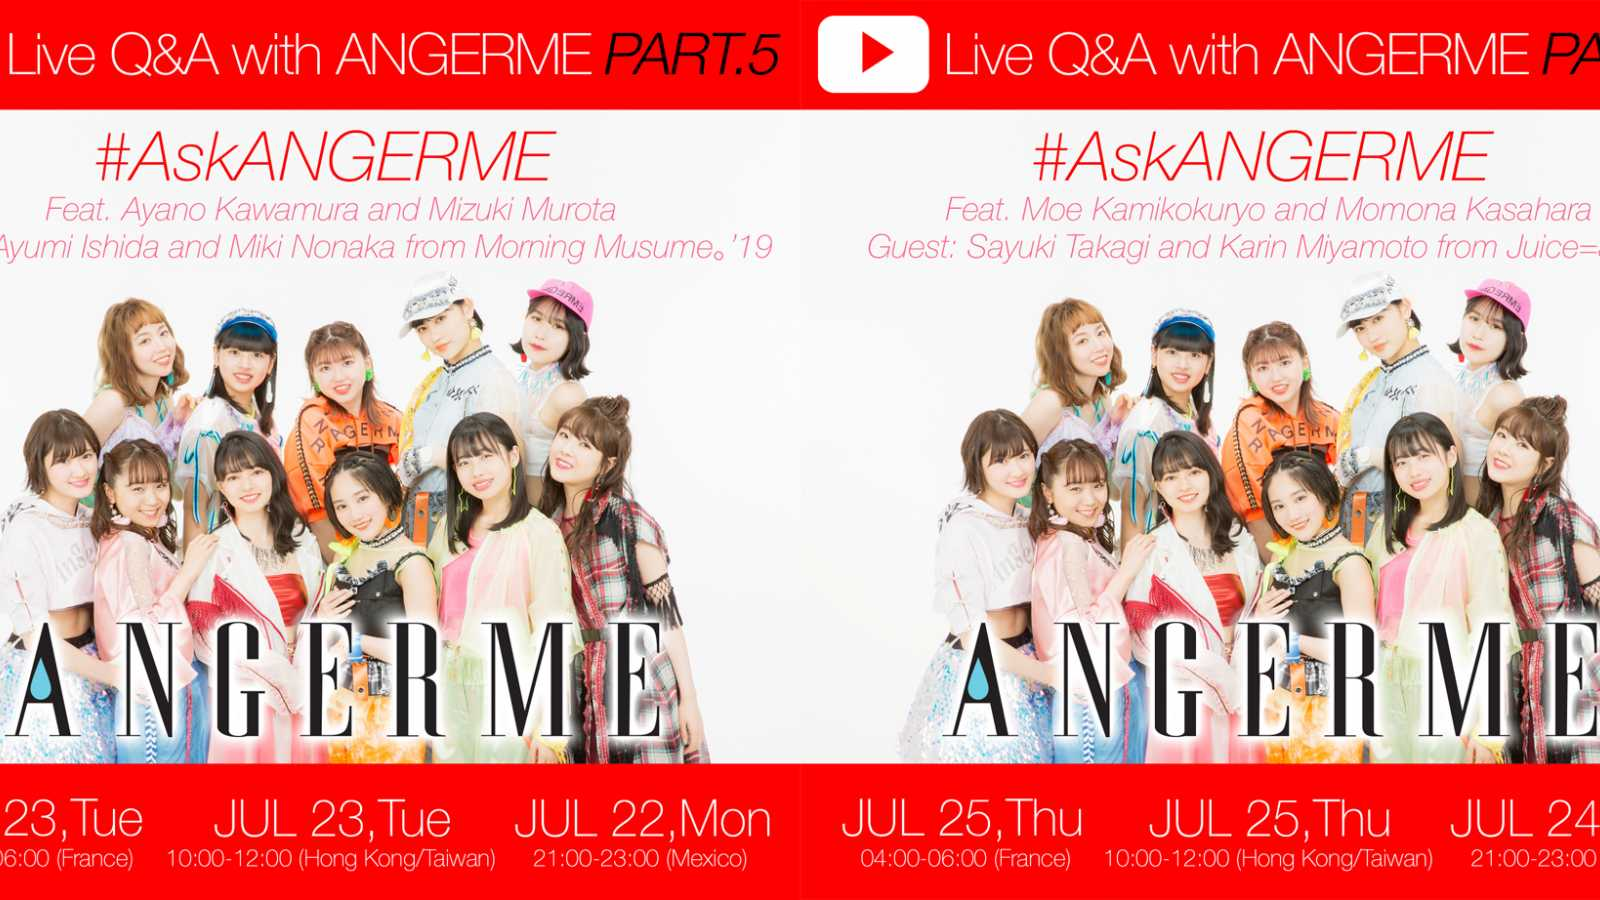 ANGERME to Hold Joint Live Q&As with Morning Musume。'19 and Juice=Juice Members © DC FACTORY. All rights reserved.